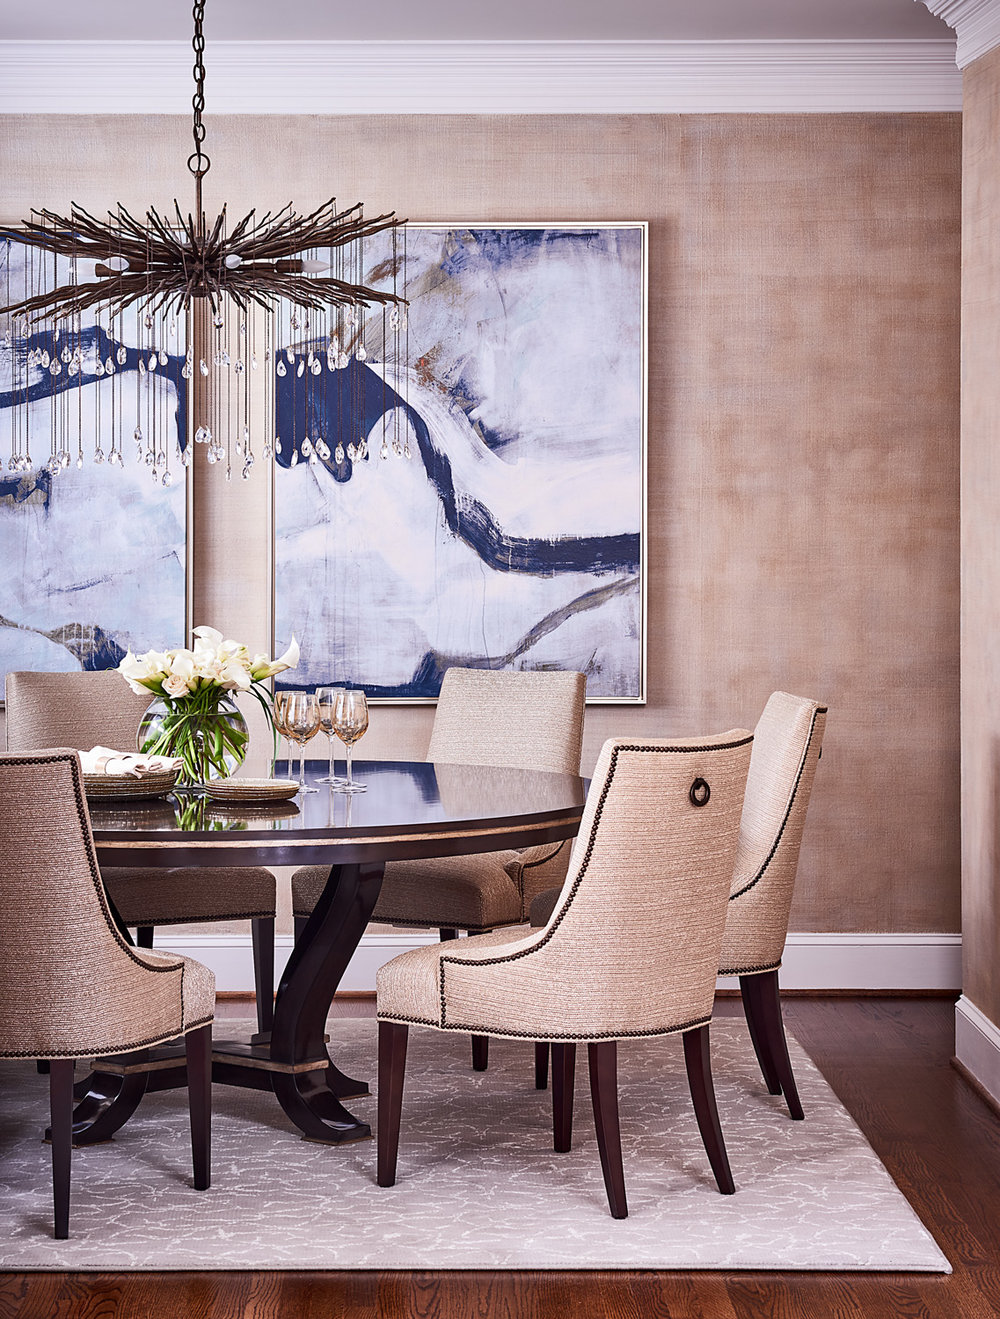 interior-design-ballantyne-cream-gold-dining-room-charlotte-nc-2.jpg.jpg